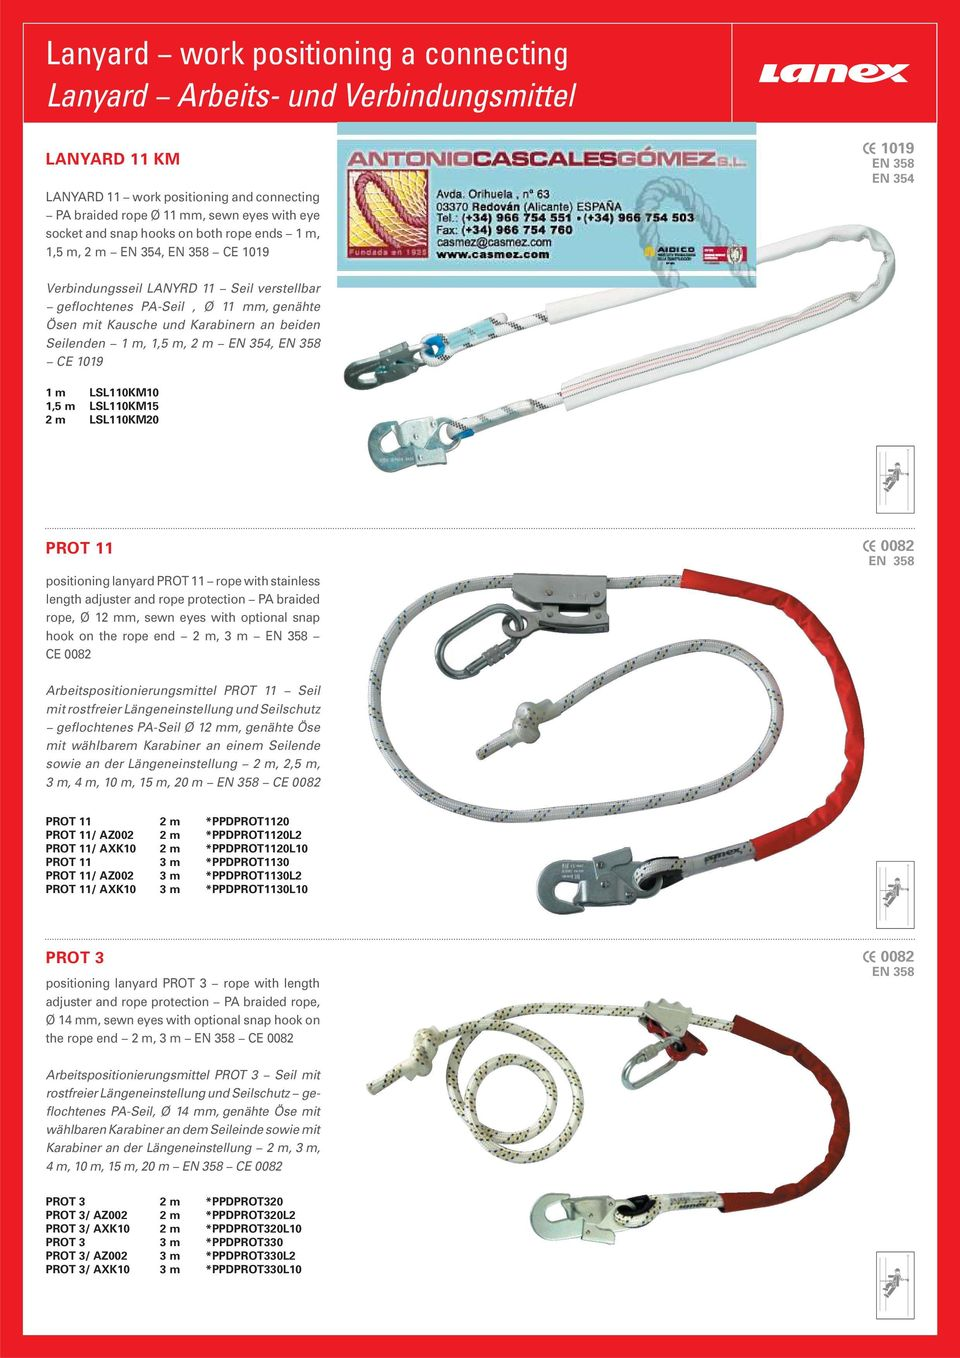 Seilenden 1 m, 1,5 m, 2 m EN 354, EN 358 CE 1019 1 m LSL110KM10 1,5 m LSL110KM15 2 m LSL110KM20 PROT 11 positioning lanyard PROT 11 rope with stainless length adjuster and rope protection PA braided